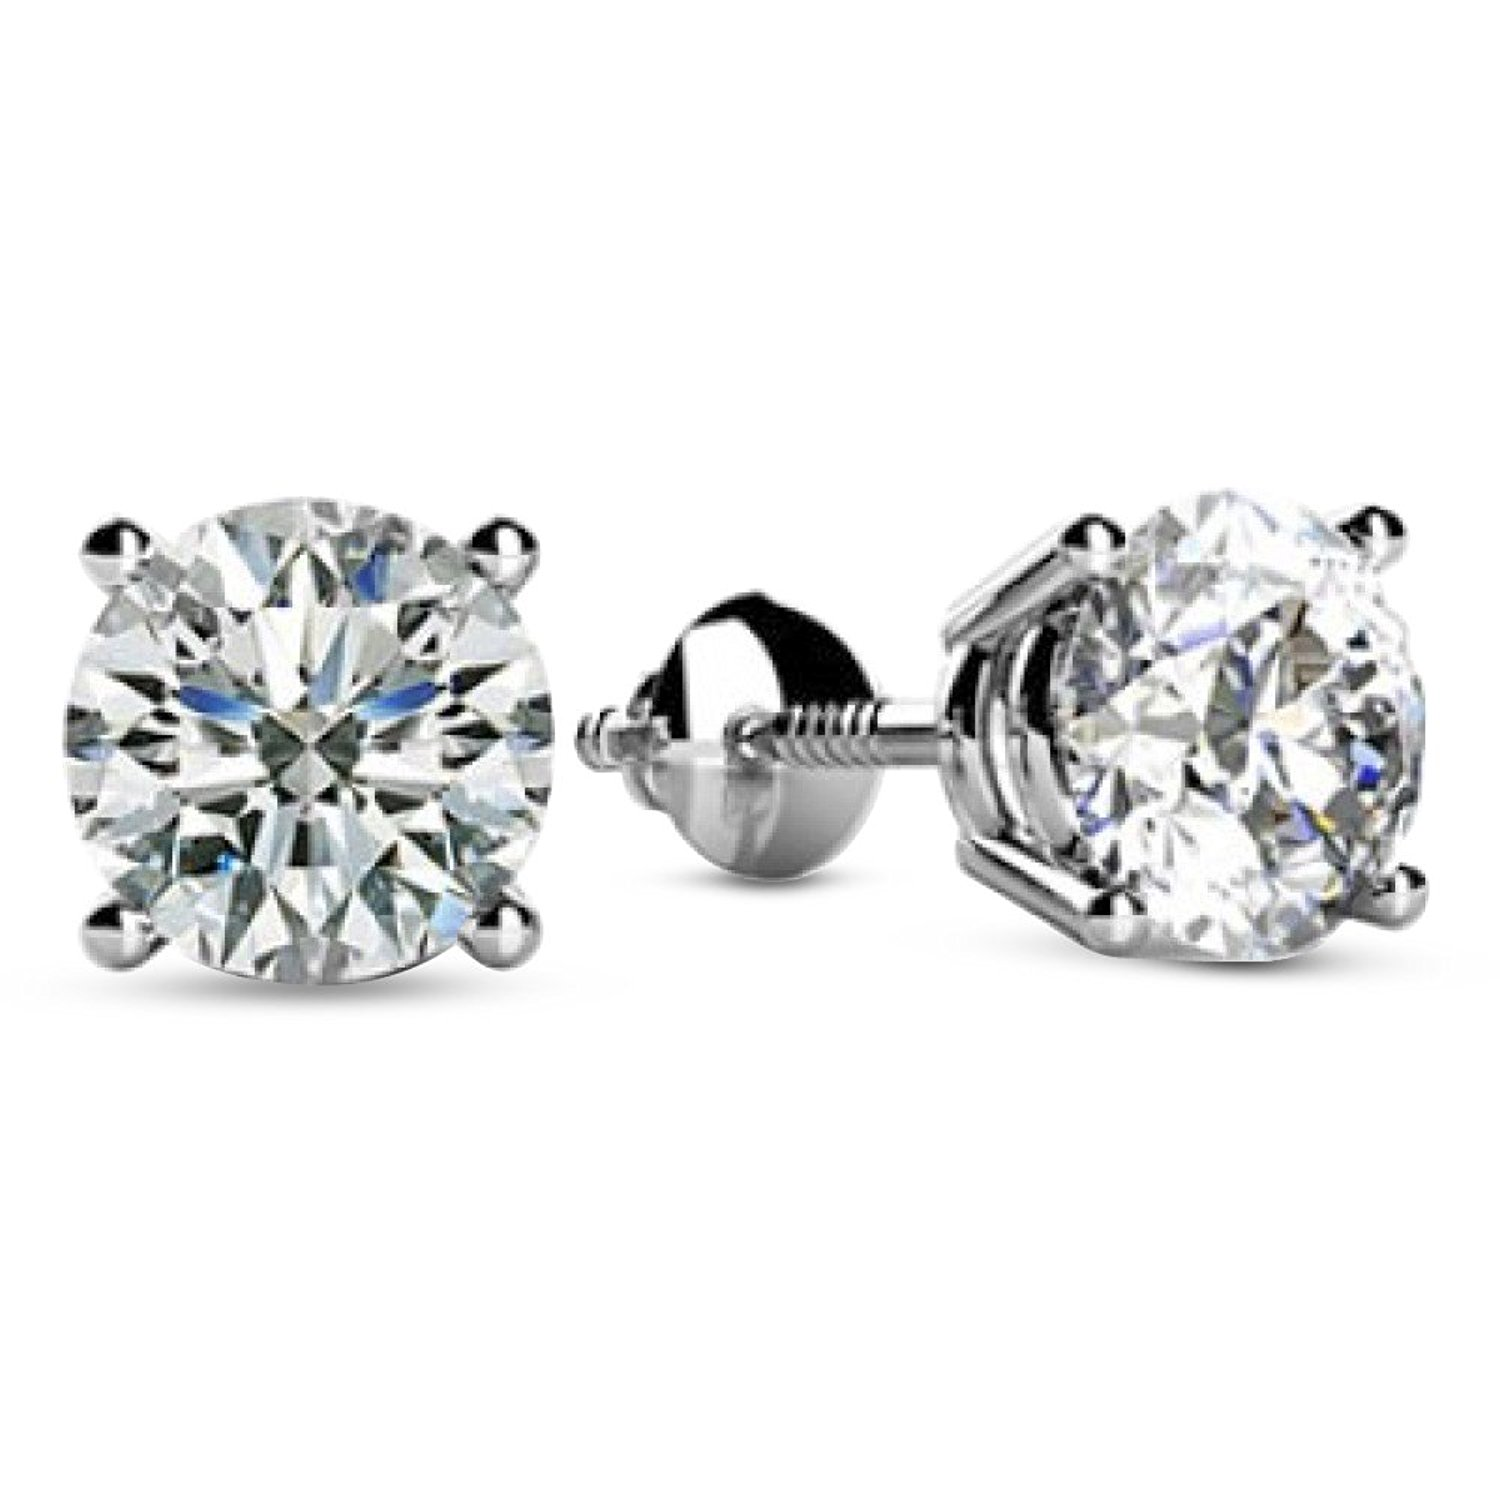 9fc47bc98 Get Quotations · 1/2 - 2 Carat Total Weight Round Diamond Stud Earrings 4  Prong Screw Back